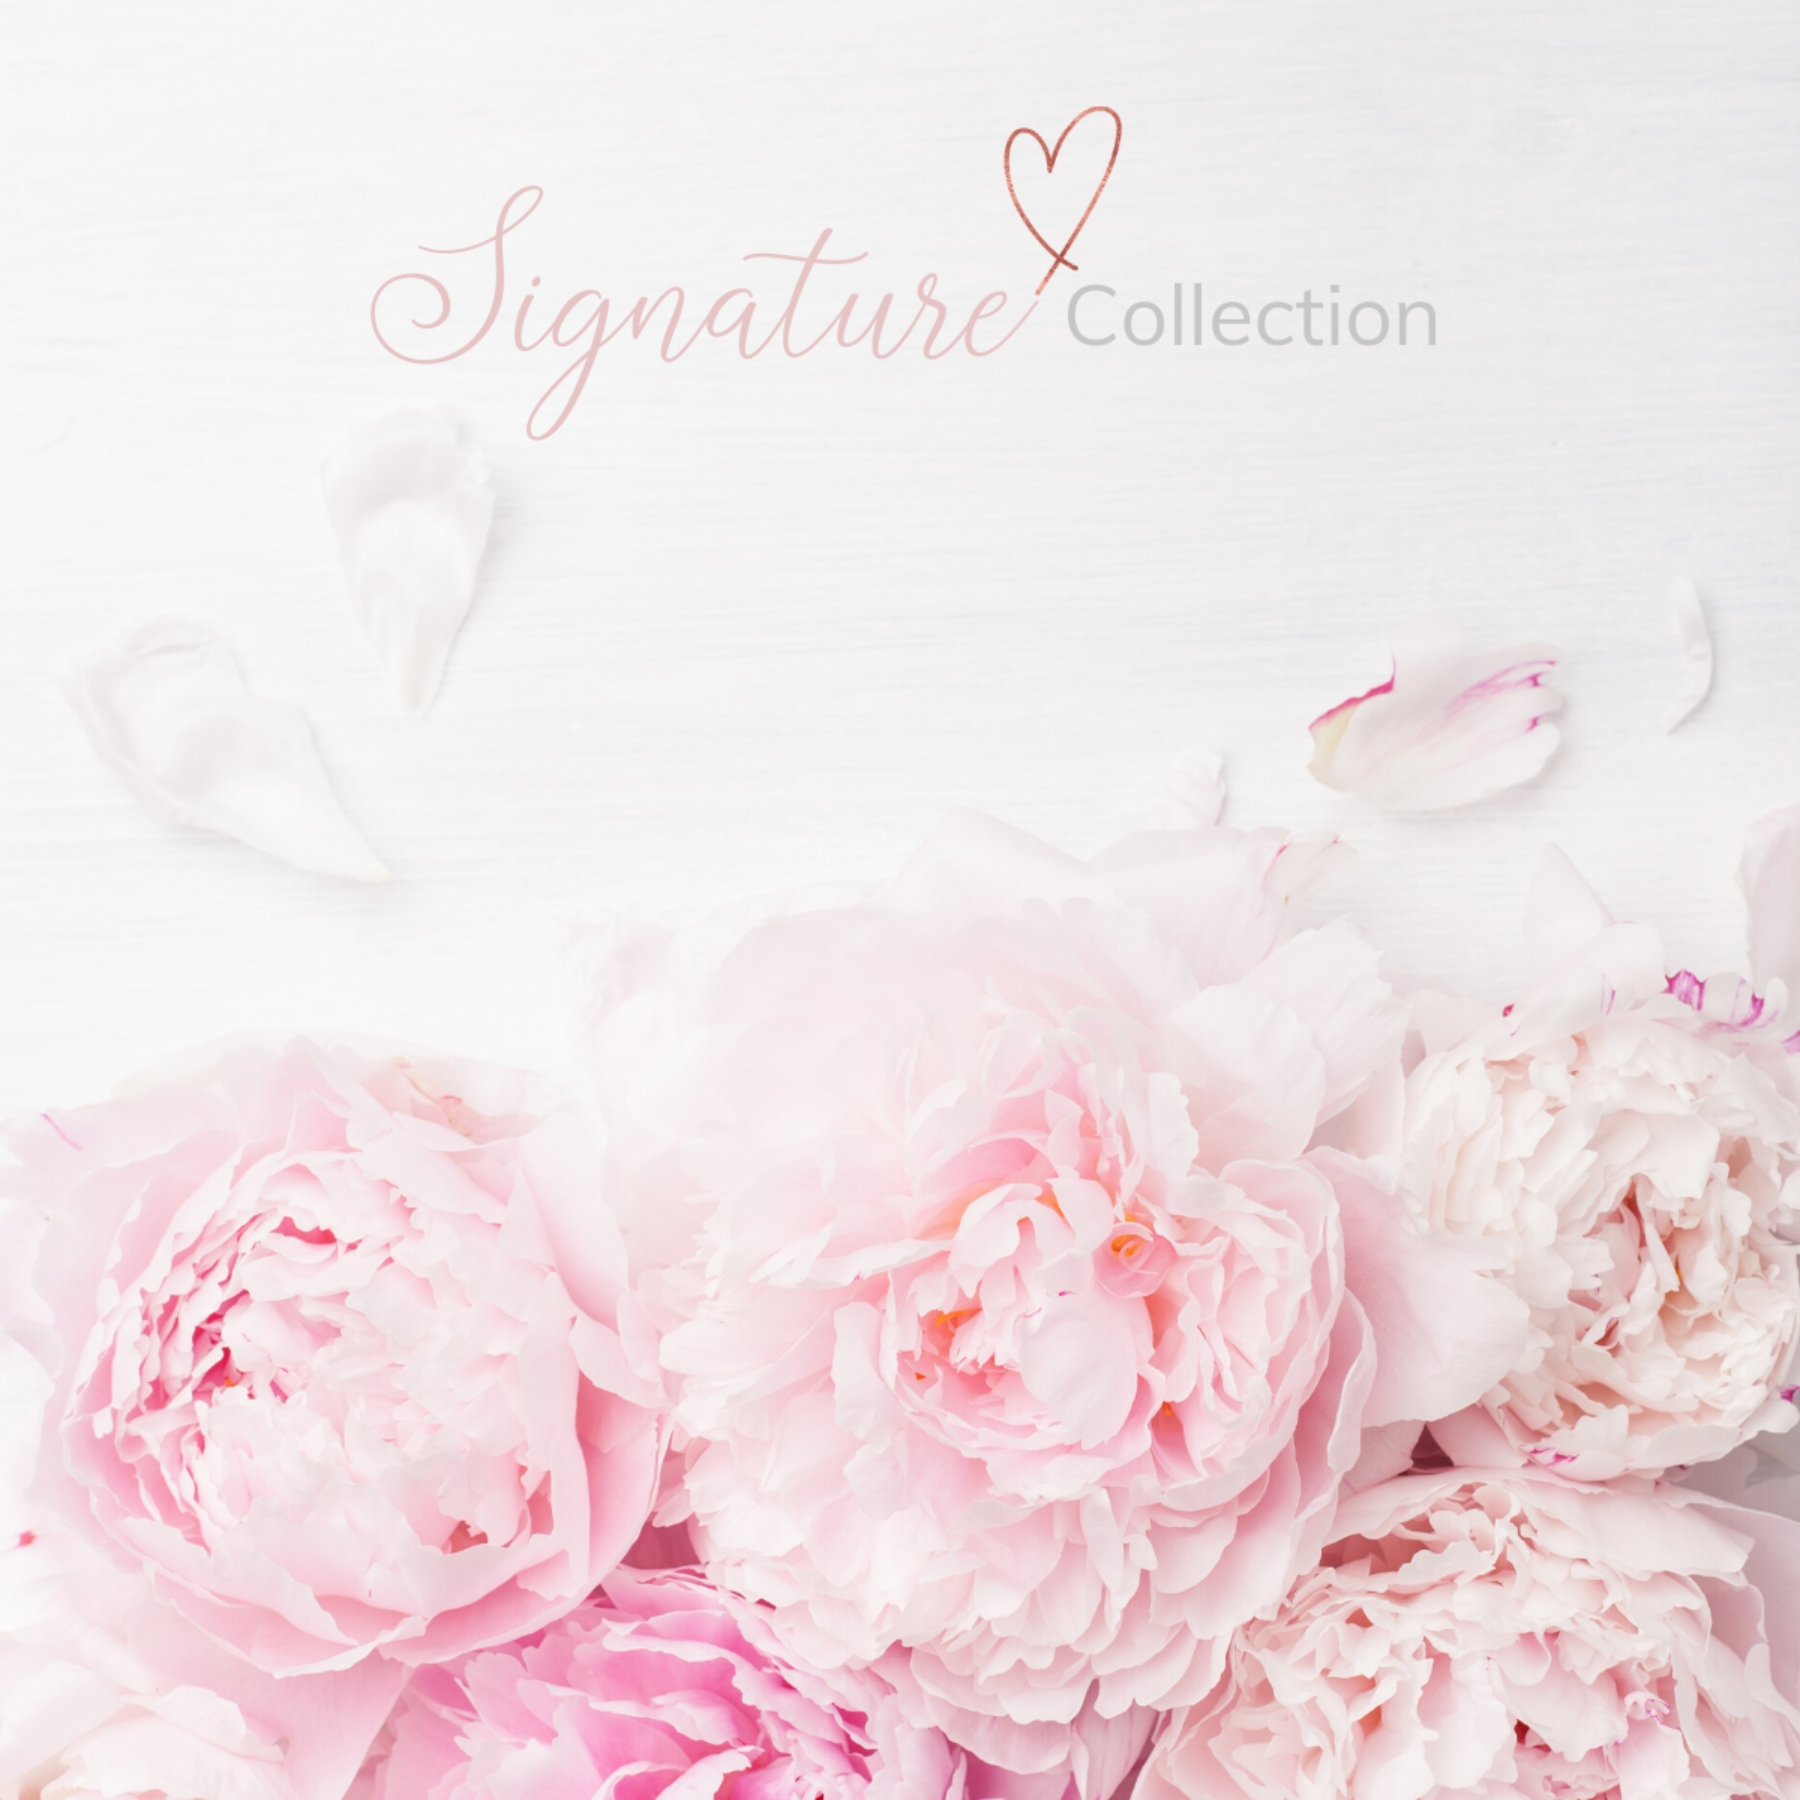 Signature Collection Scents